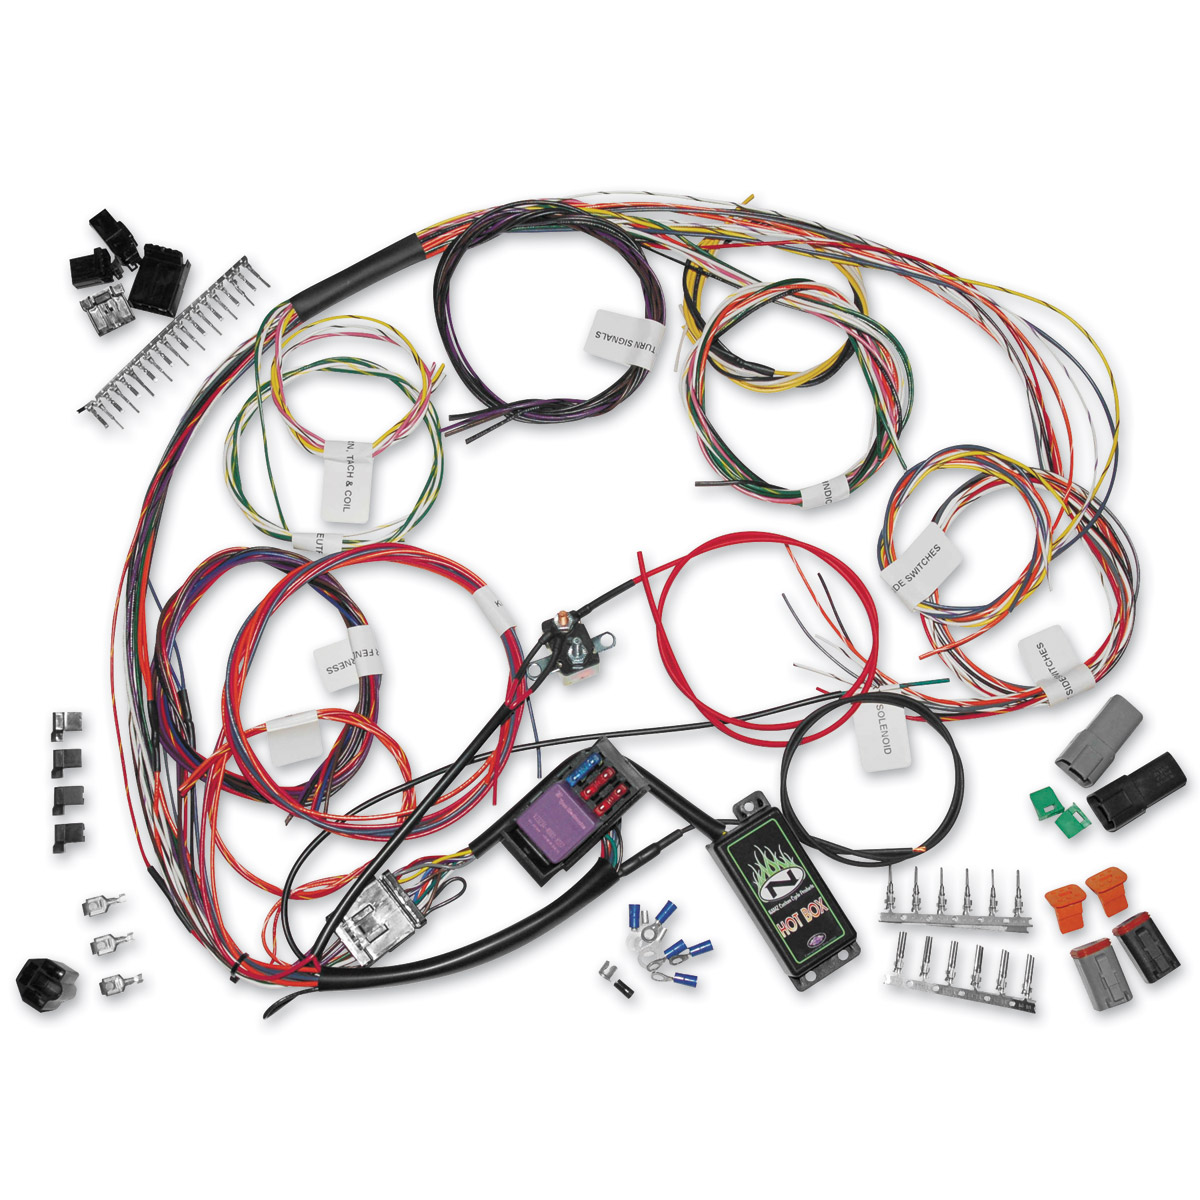 namz custom cycle complete bike wiring harness kit ncbh 01 a Wiring Harness 93A050059